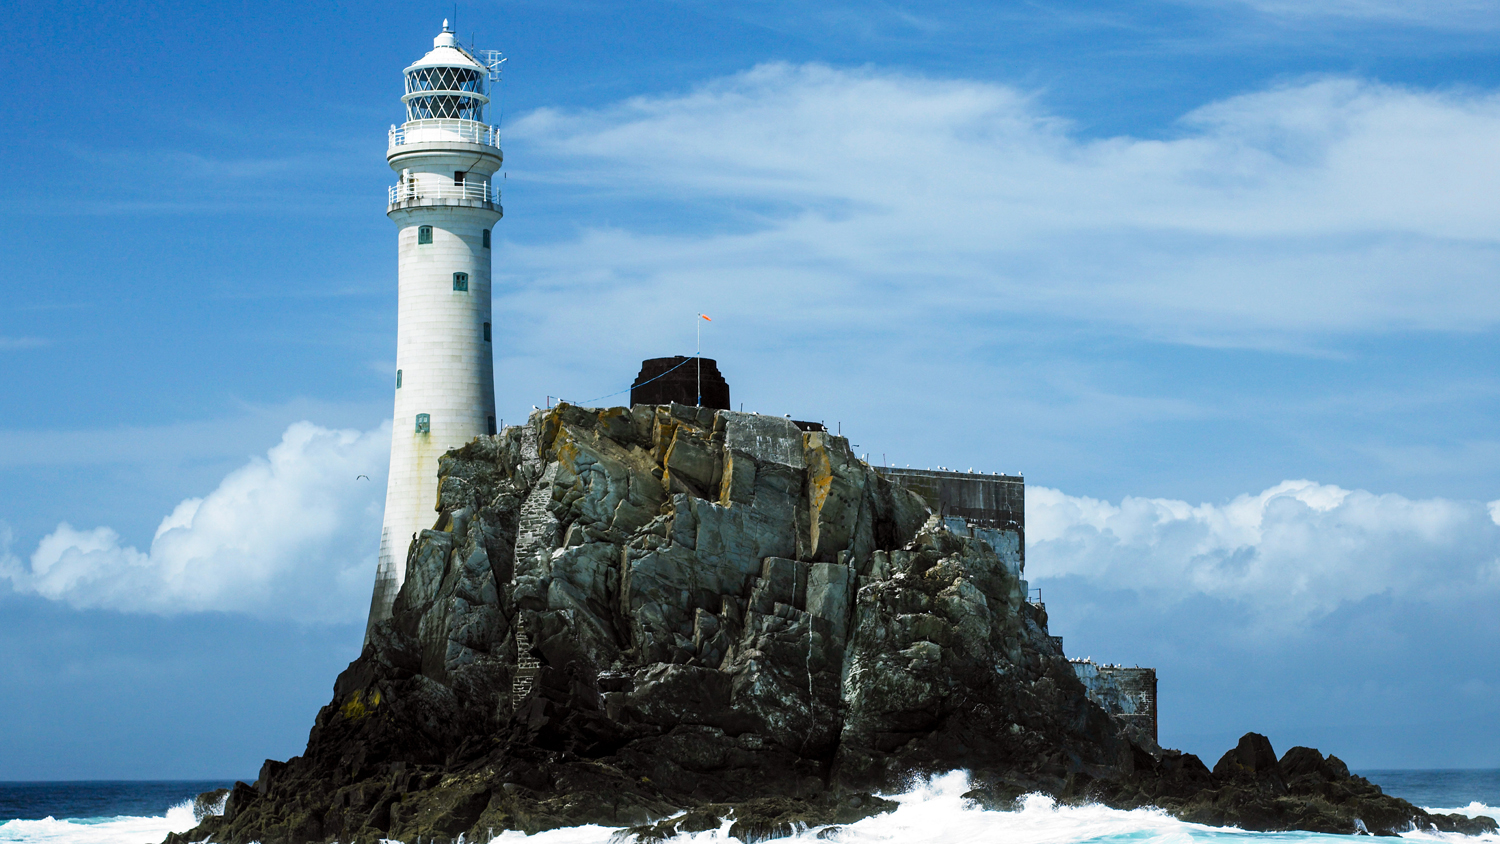 The furthest point in the race, the iconic Fastnet Rock